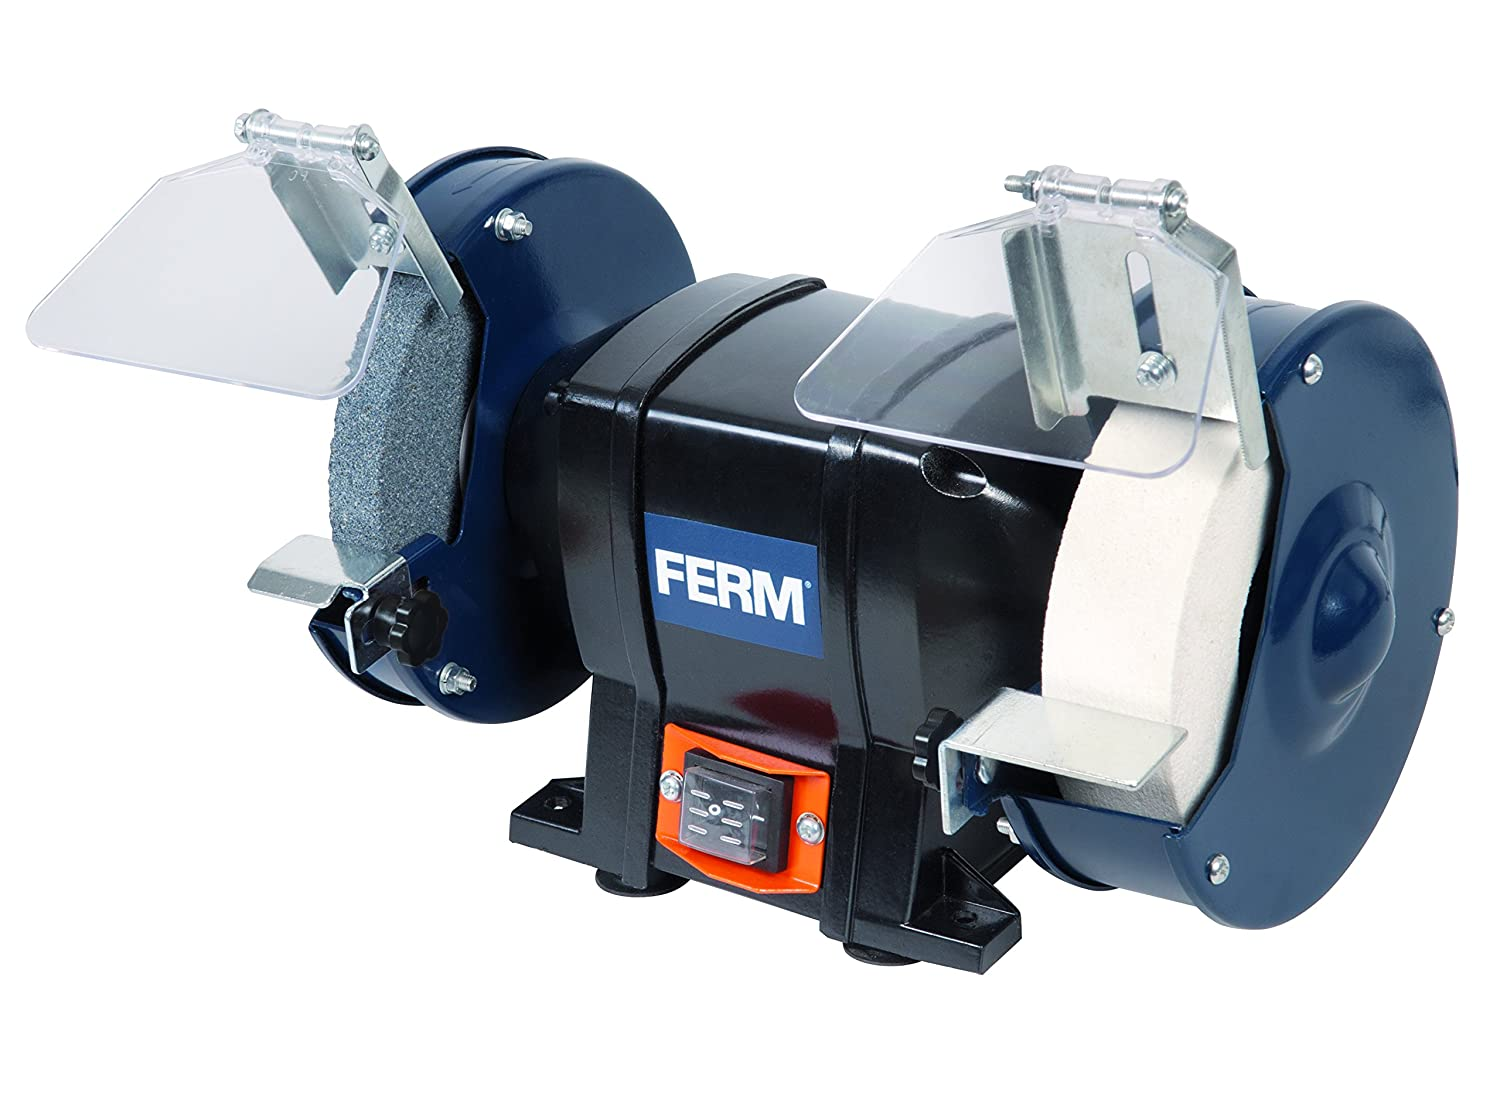 FERM Bench Grinder - 250W - 150mm - Mountable to your workbench - With 2 Grinding stones (P36 and P80), 2 Spark Arresters and 2 Work Rests BGM1020